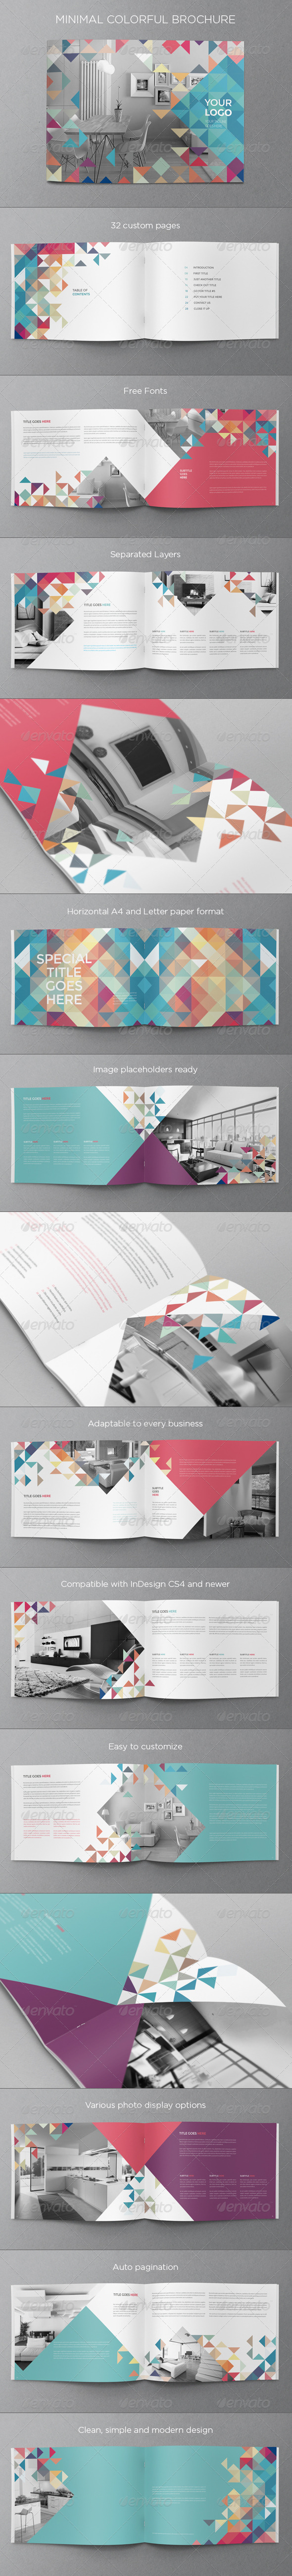 GraphicRiver Minimal Colorful Brochure 8232684